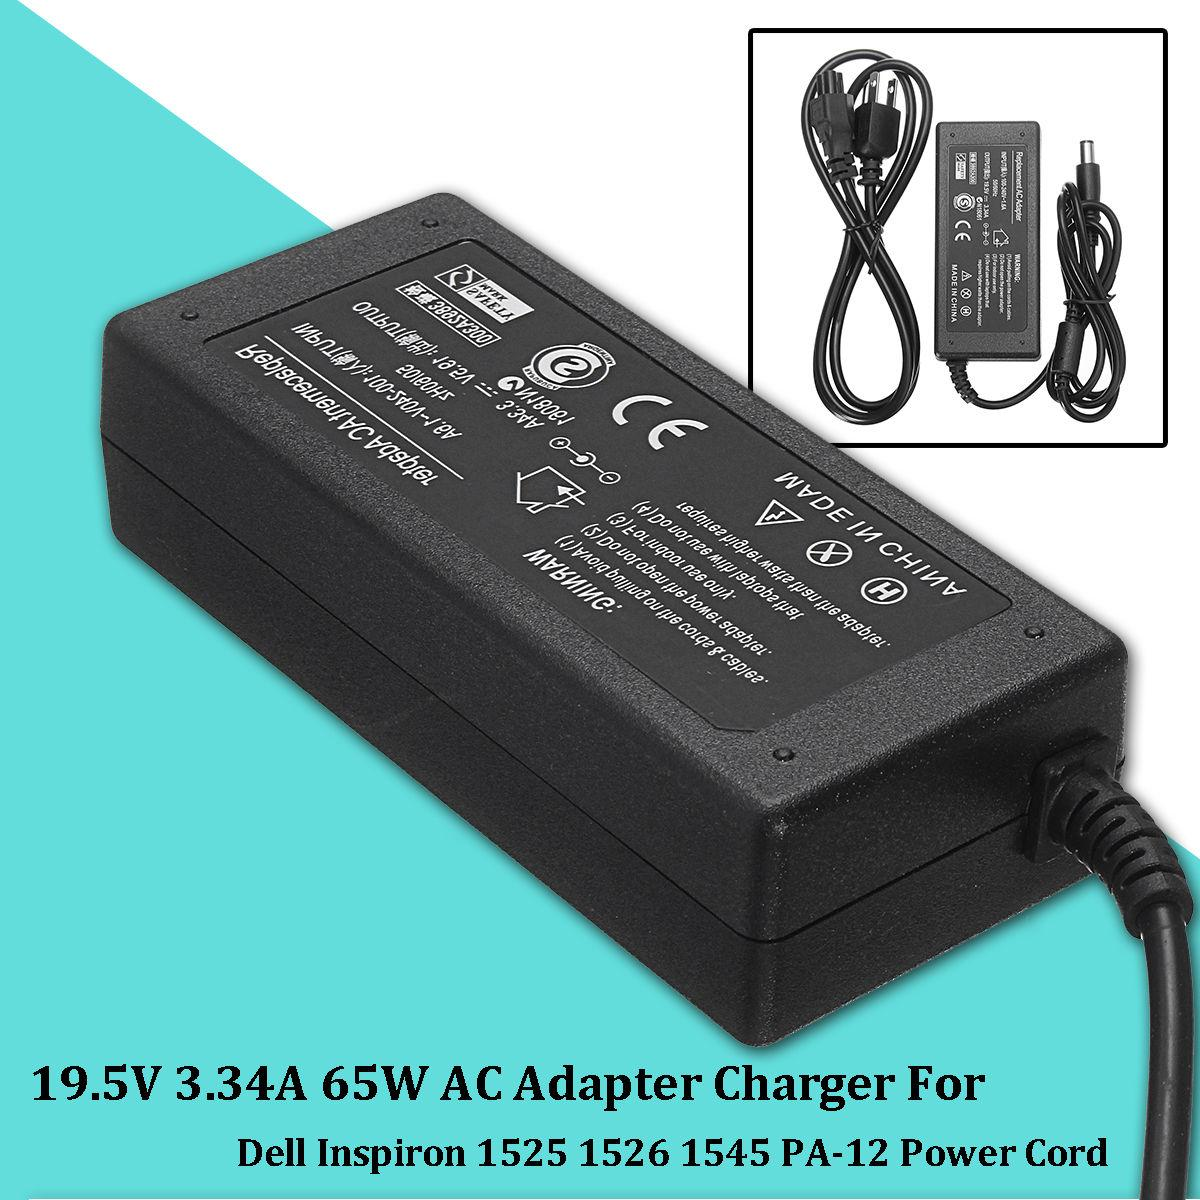 Battery AC Adapter Charger Power For Dell Inspiron 1525 1526 1545 PA-12  Laptop